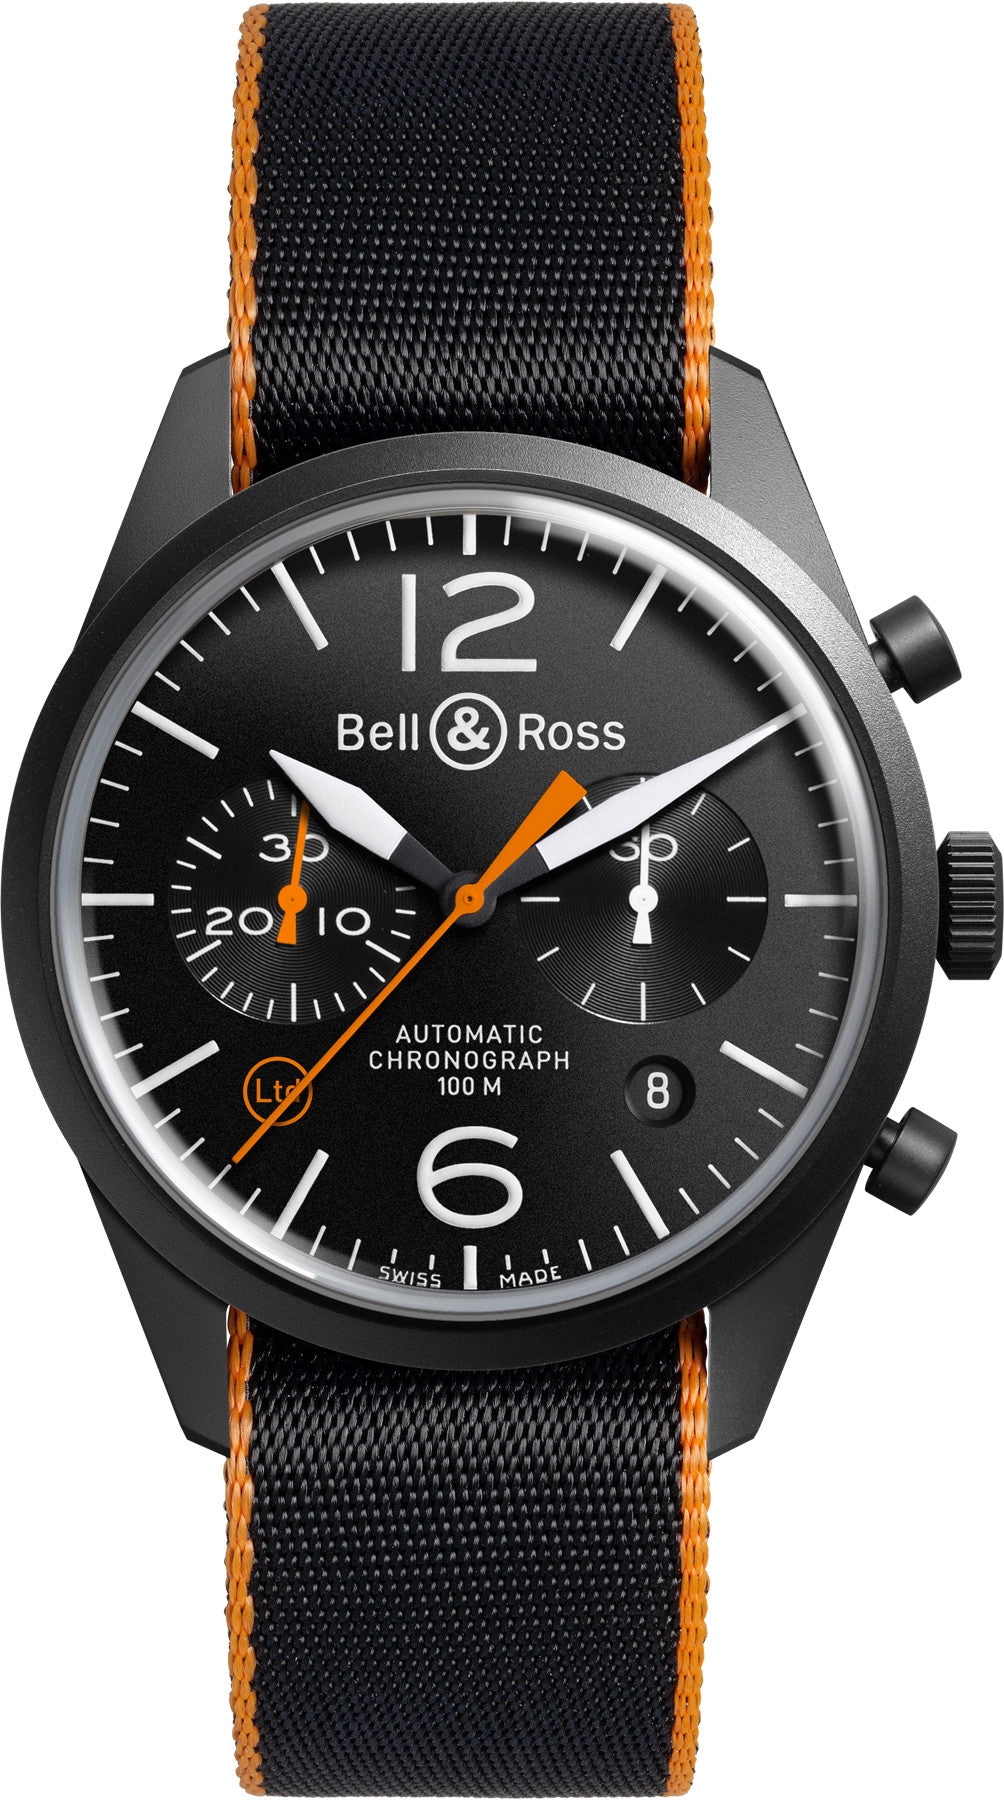 Bell & Ross Watch Carbon Orange Blackbird Limited Edition